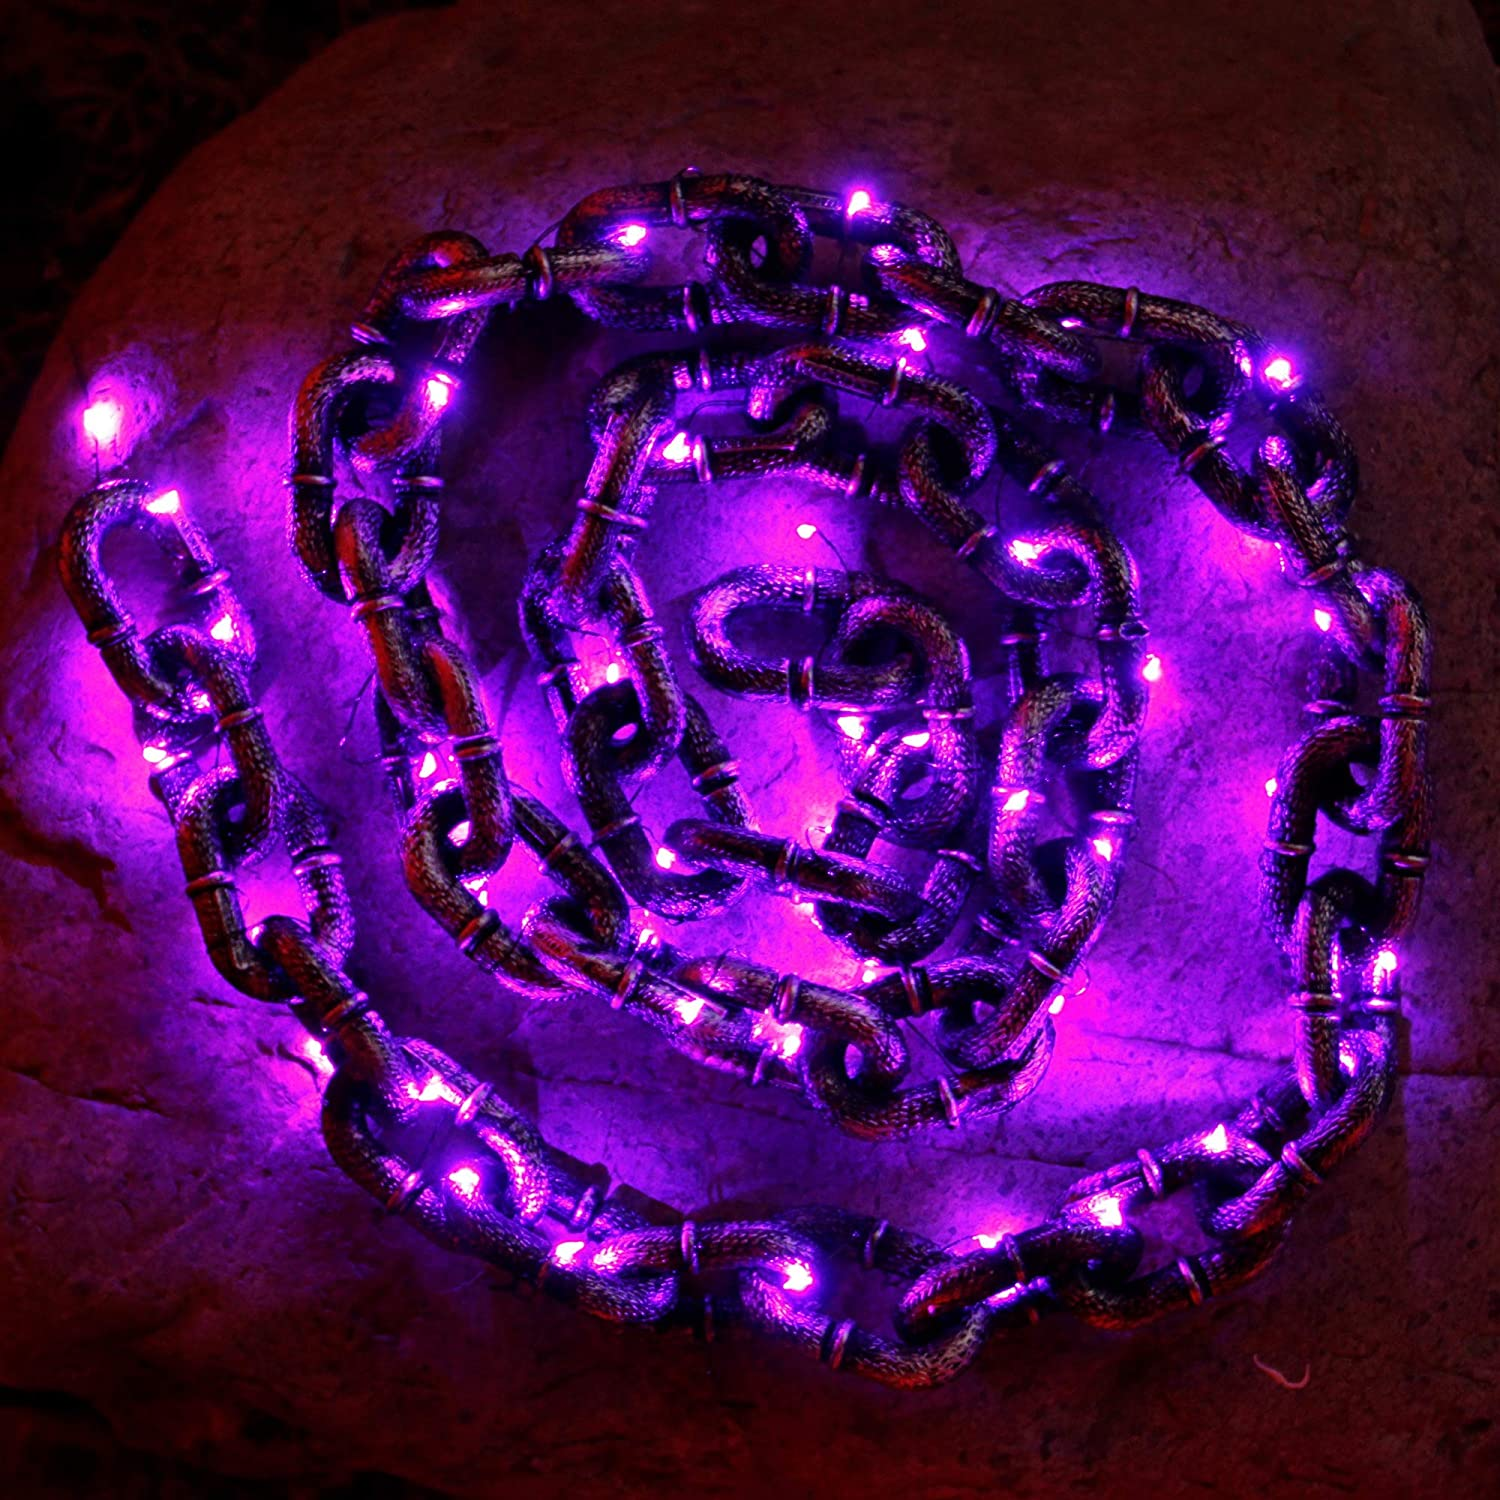 DR.DUDU 6 FT Halloween Plastic Chain Props with 50 LED Purple Light, Halloween Decoration Chain Toy, Great for Costume Party